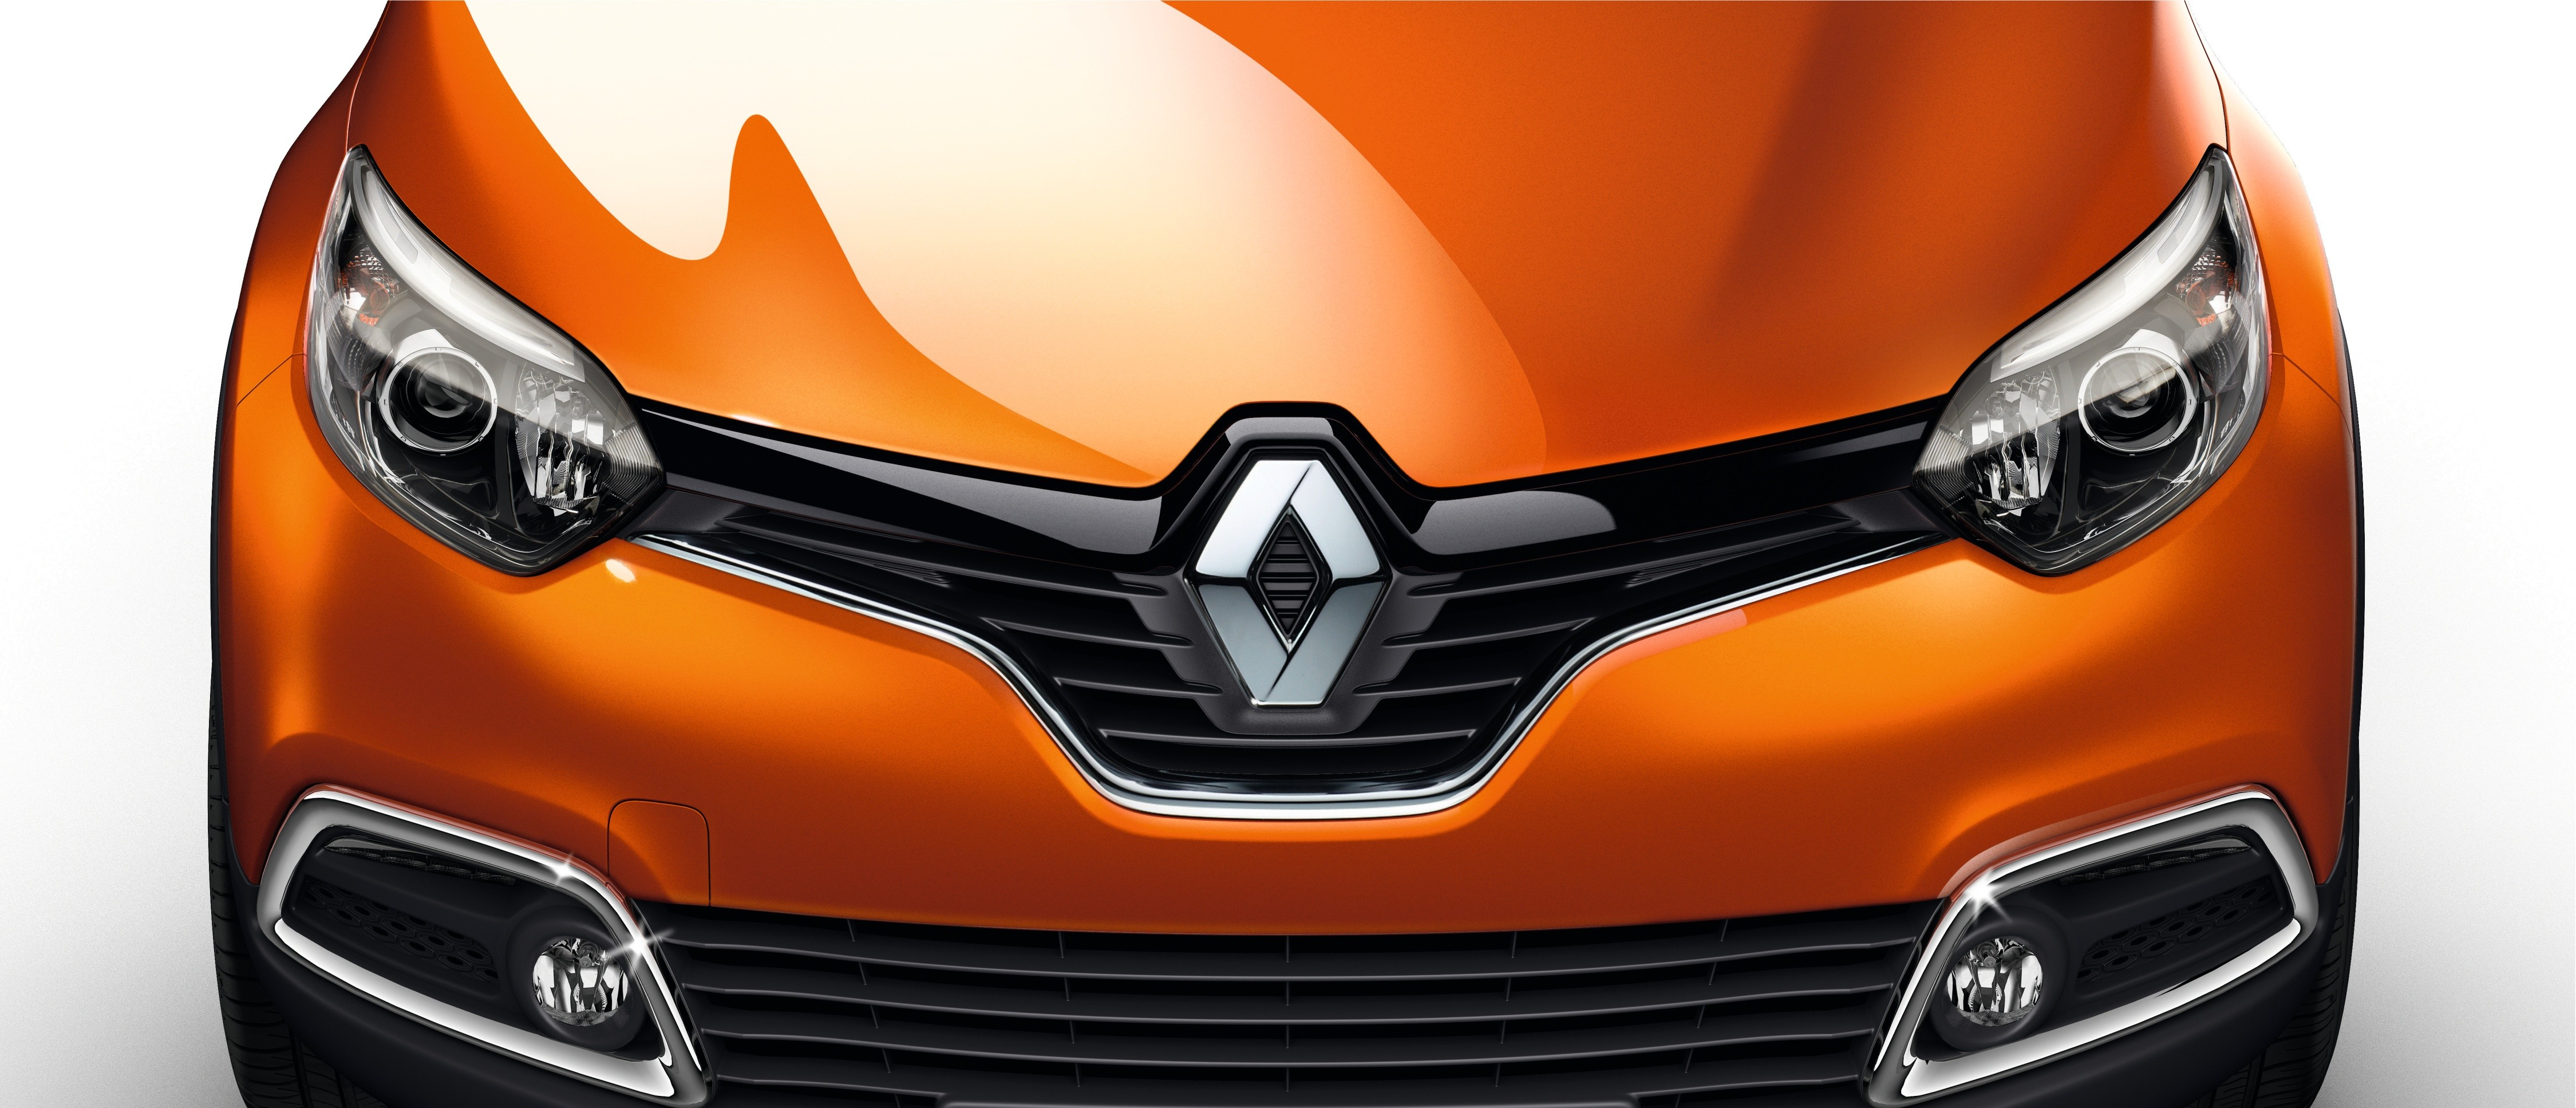 Renault Captur_Featuring the brand's the new frontal identity